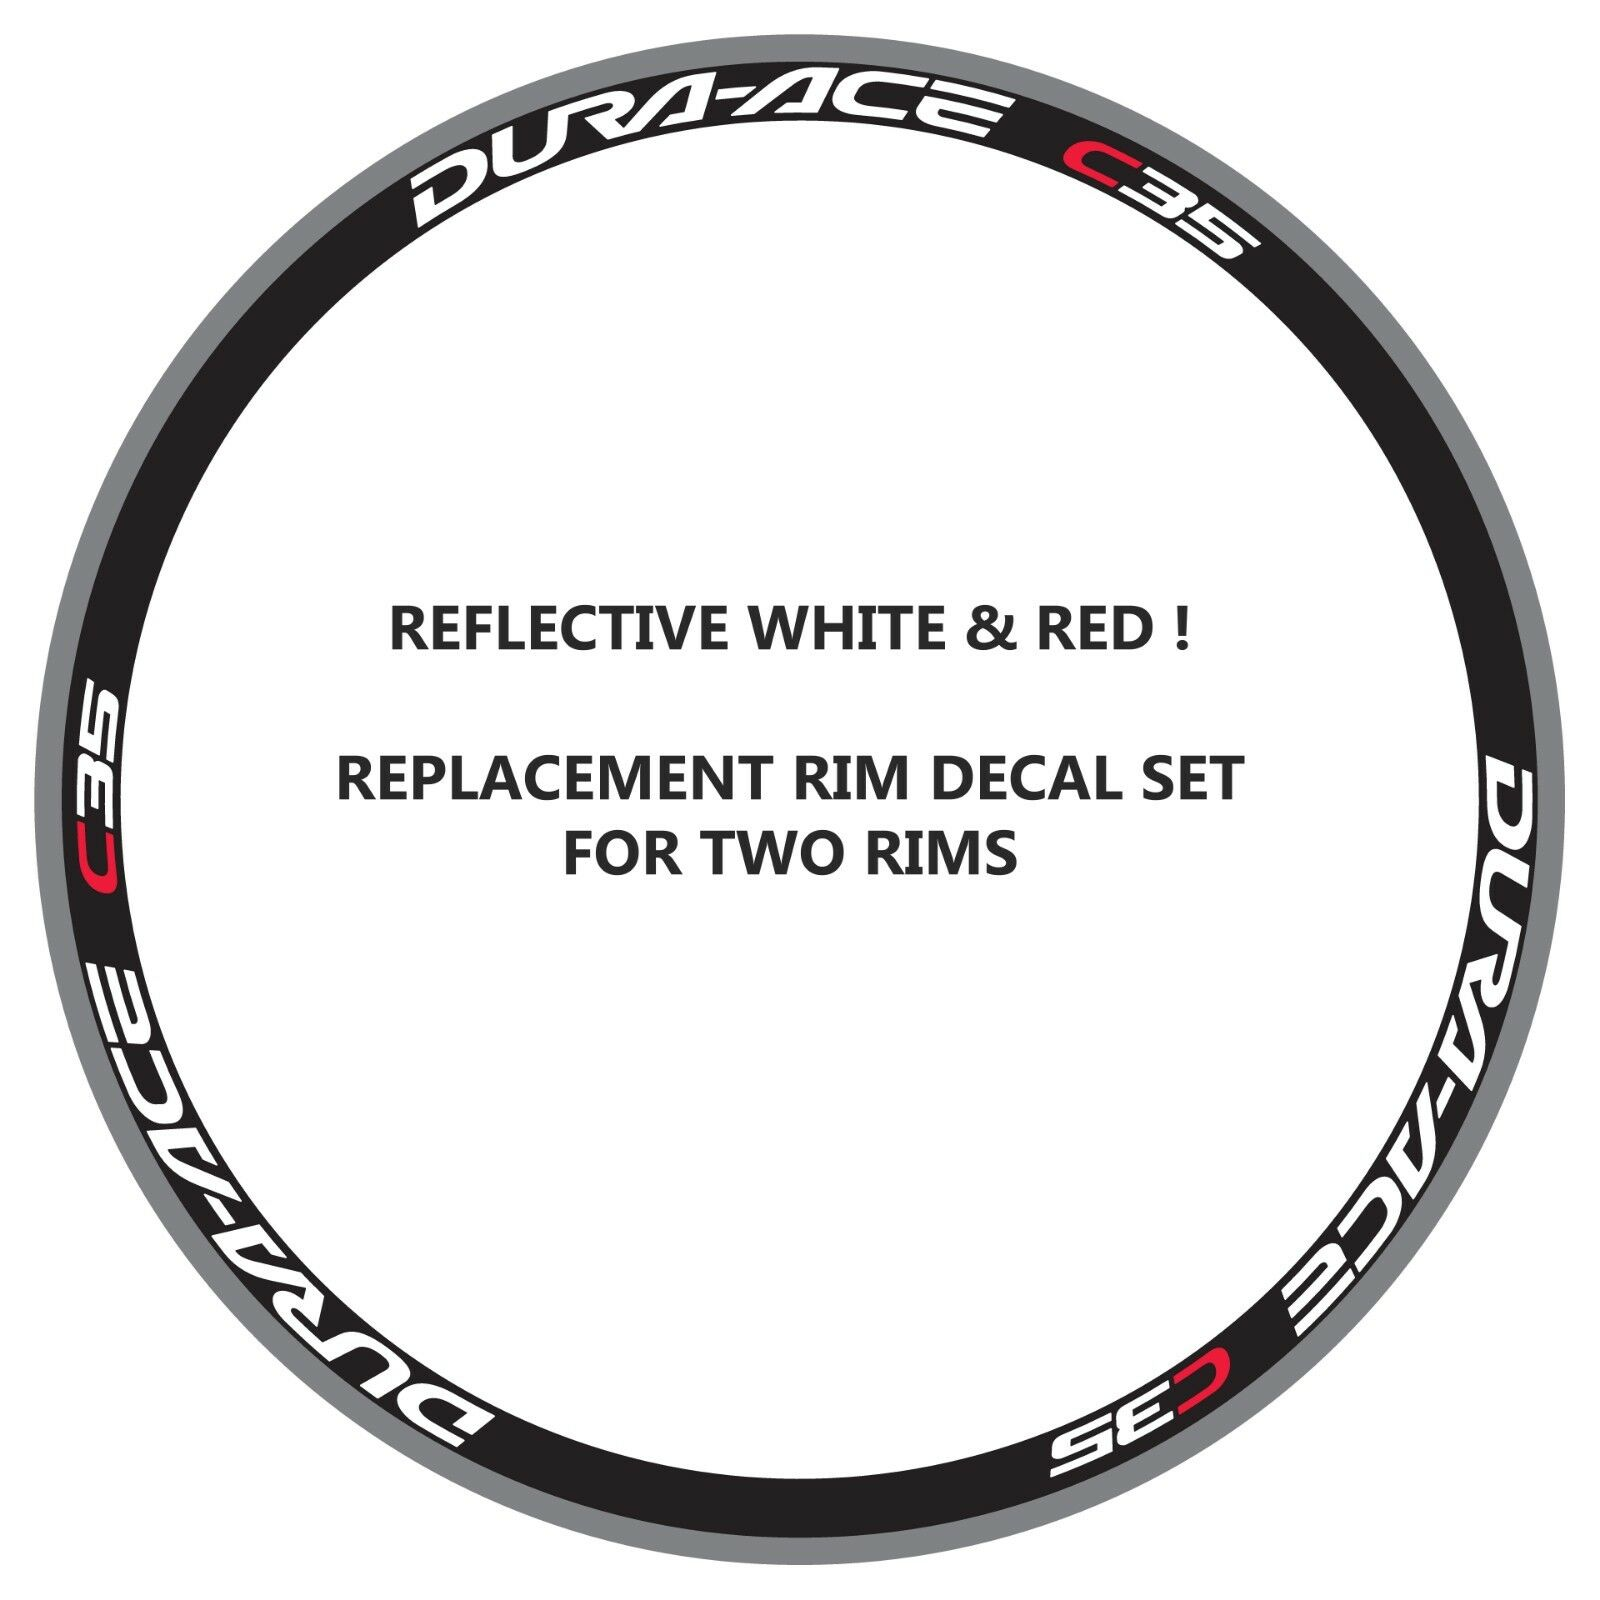 DURA ACE C35 REFLECTIVE WHITE RED REPLACEMENT RIM DECALS FOR 2 RIMS